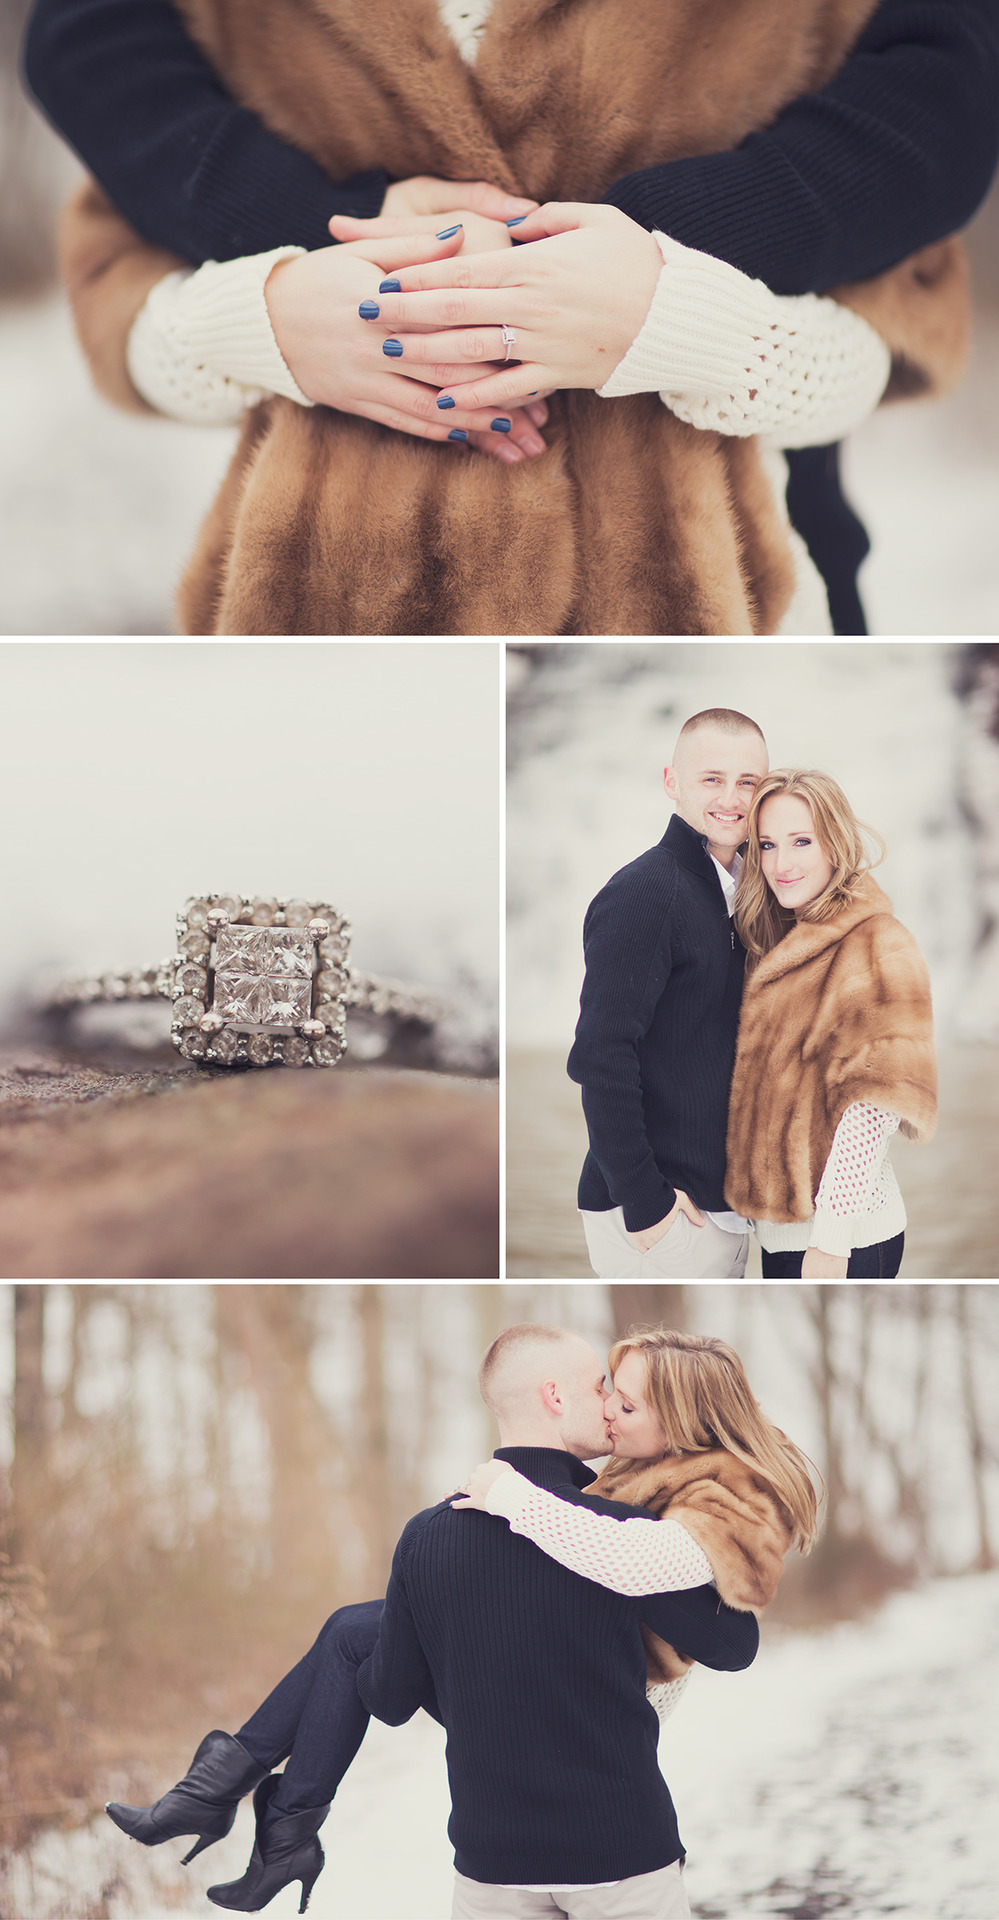 Elissa & Brian   Beautiful winter weather in western upstate New York made for a great backdrop for Elissa and Brian's engagement photos. They are currently living in the humid hot southern state of Mississippi, so it was a fun change to take some photos in the snow in their home town.